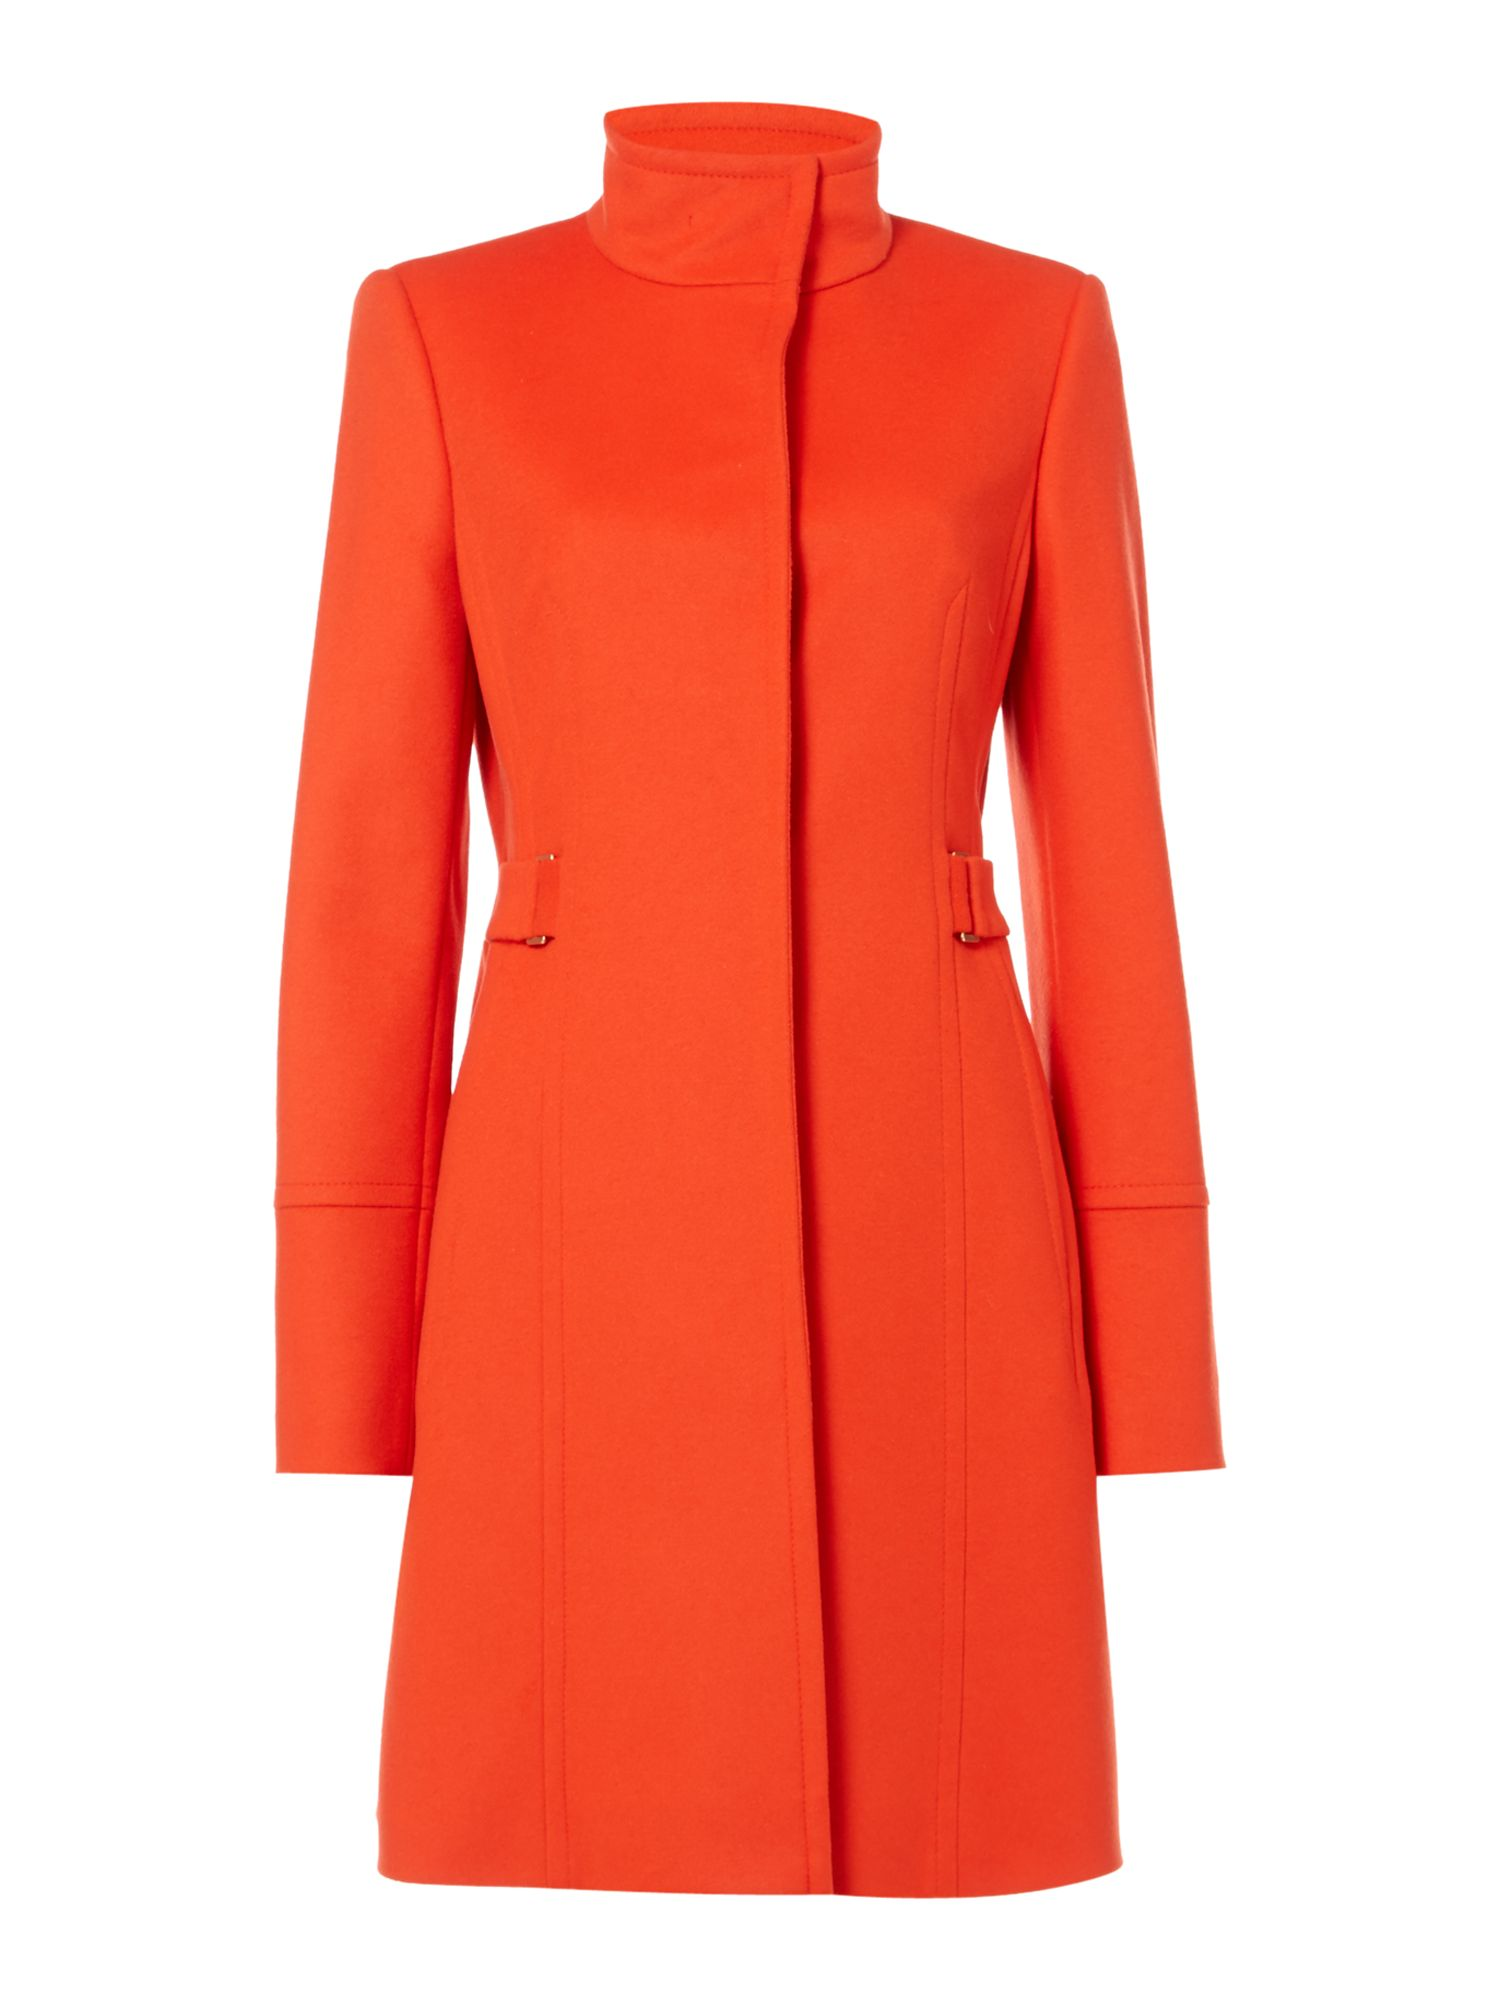 Hugo Boss Cosamyna Side Buckle Coat, Orange